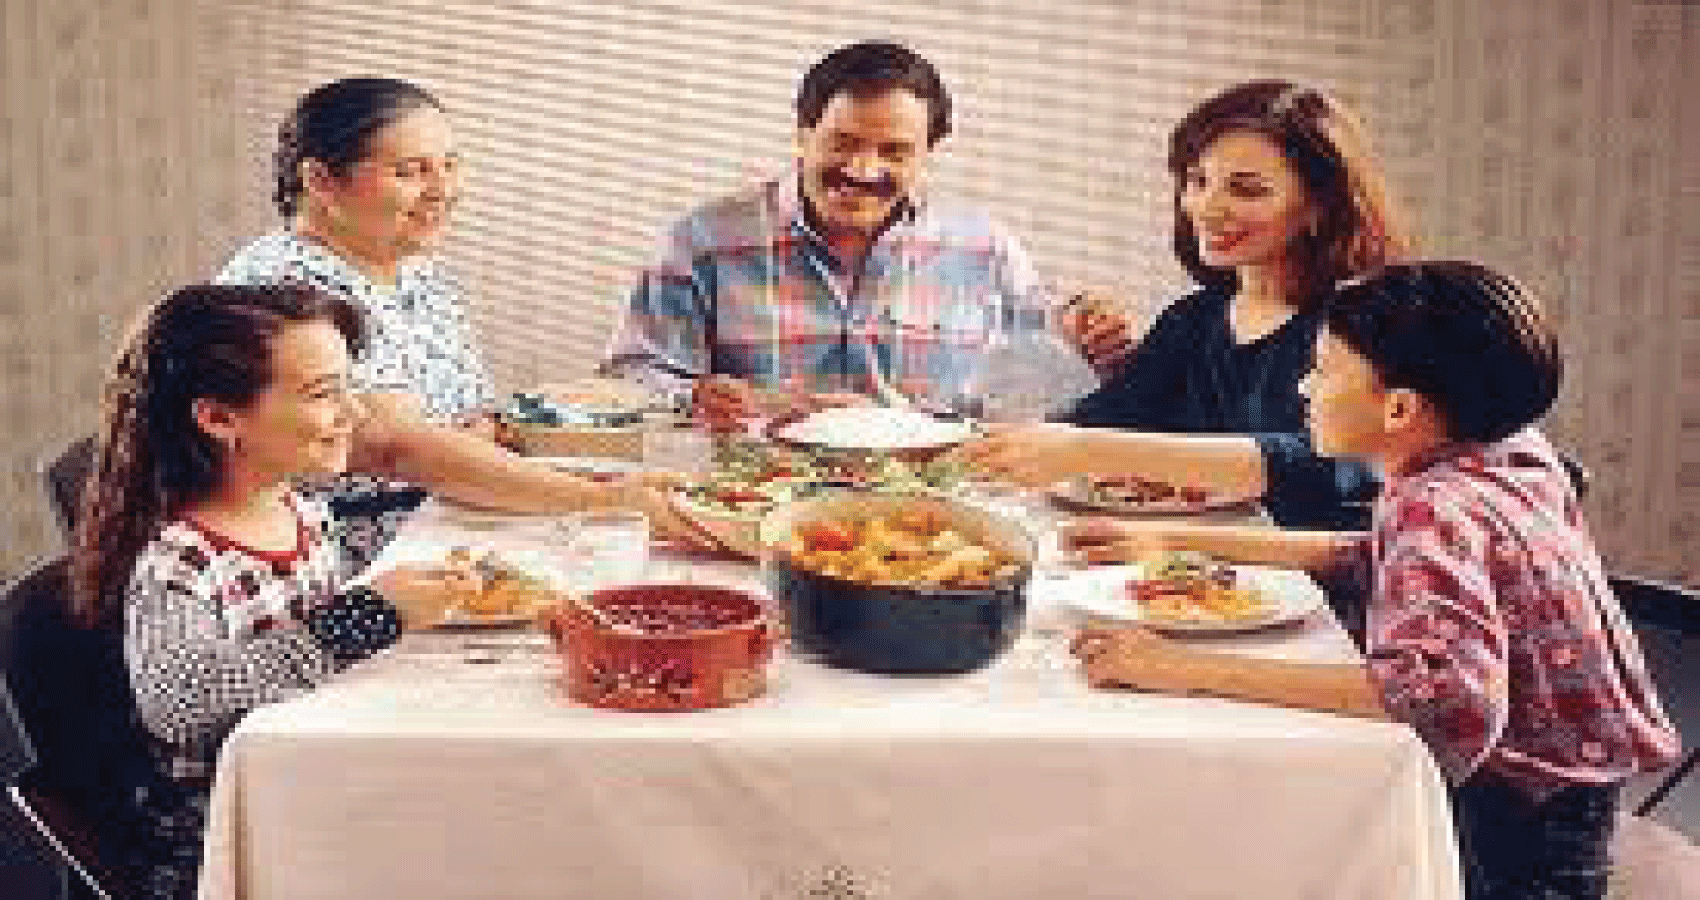 Study Highlights Importance, Complexities Of Family Mealtimes